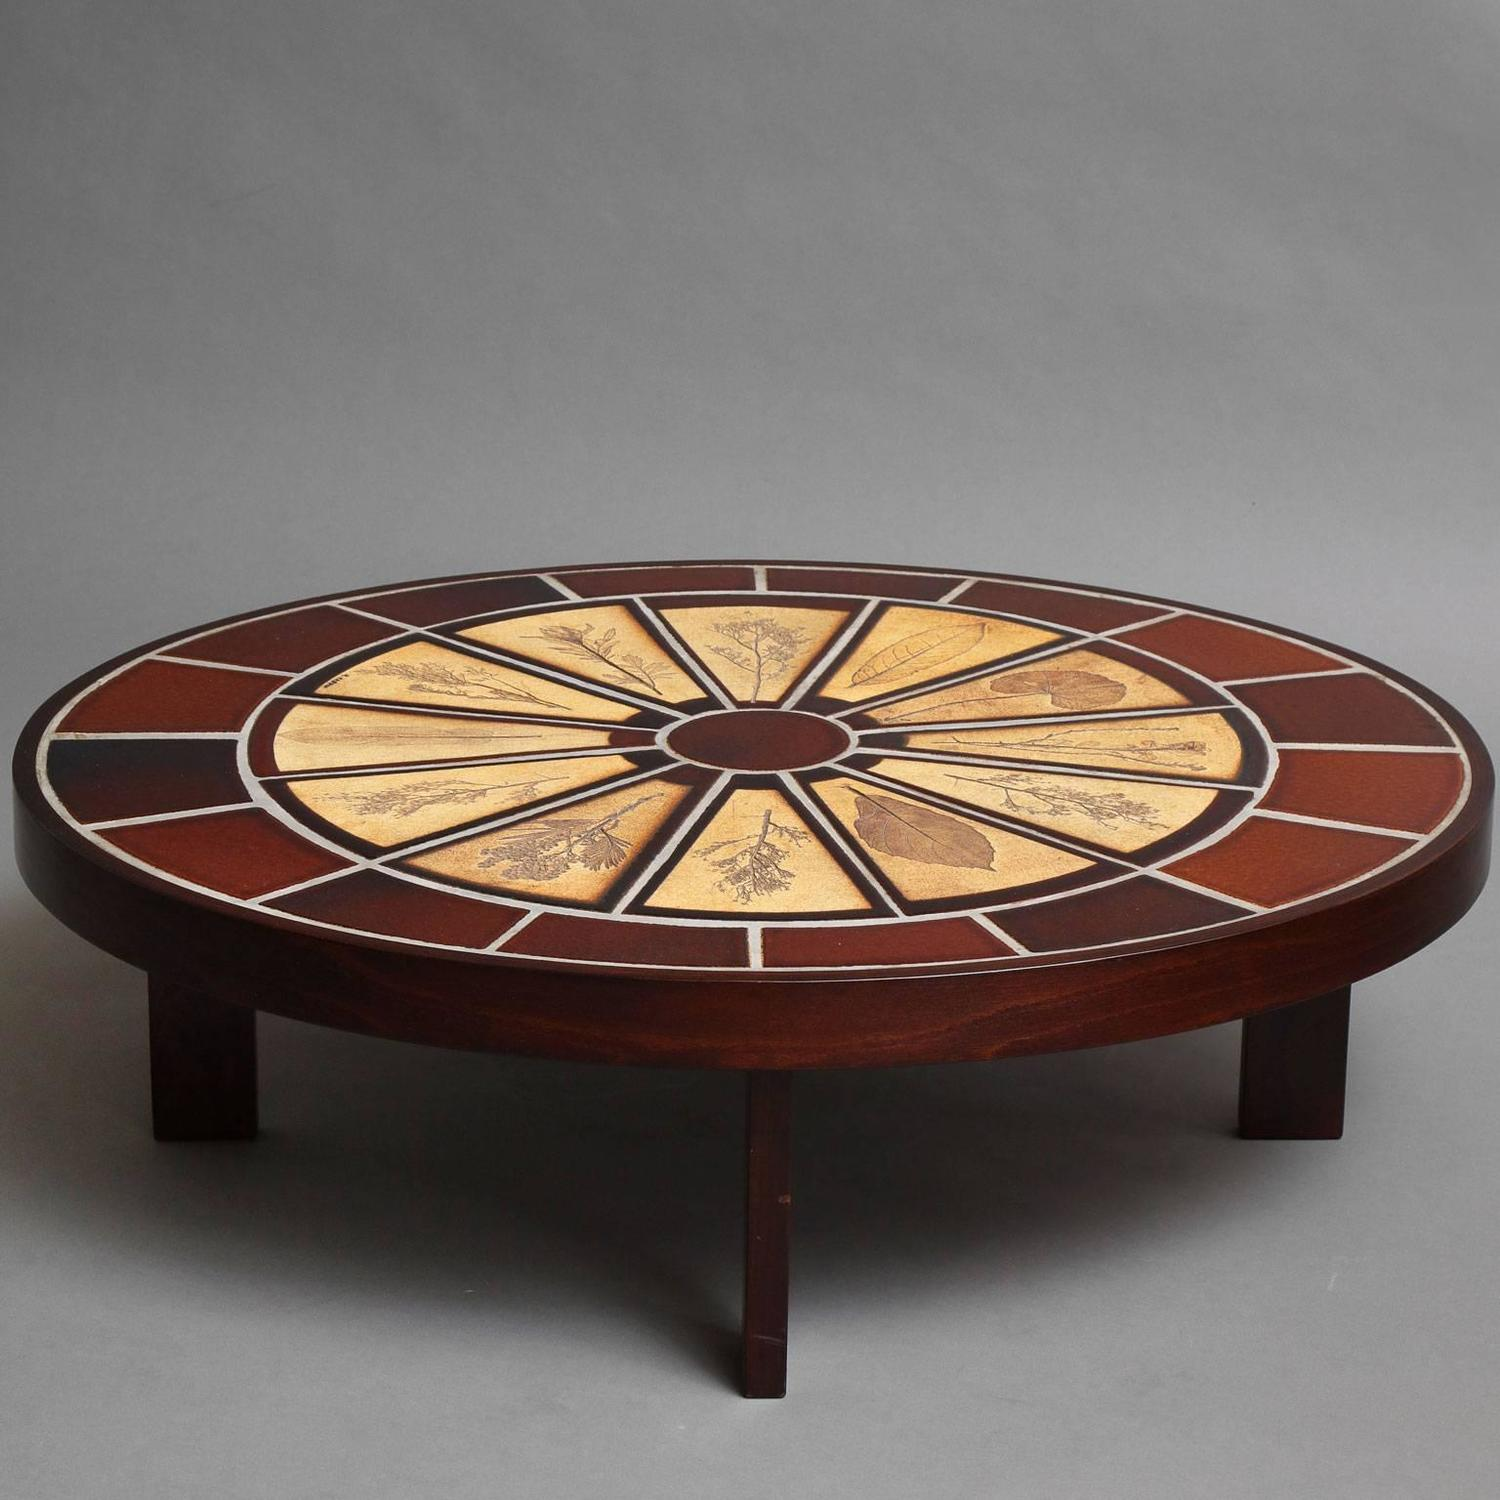 Roger Capron Coffee Table With Ceramic Tiles For Sale At